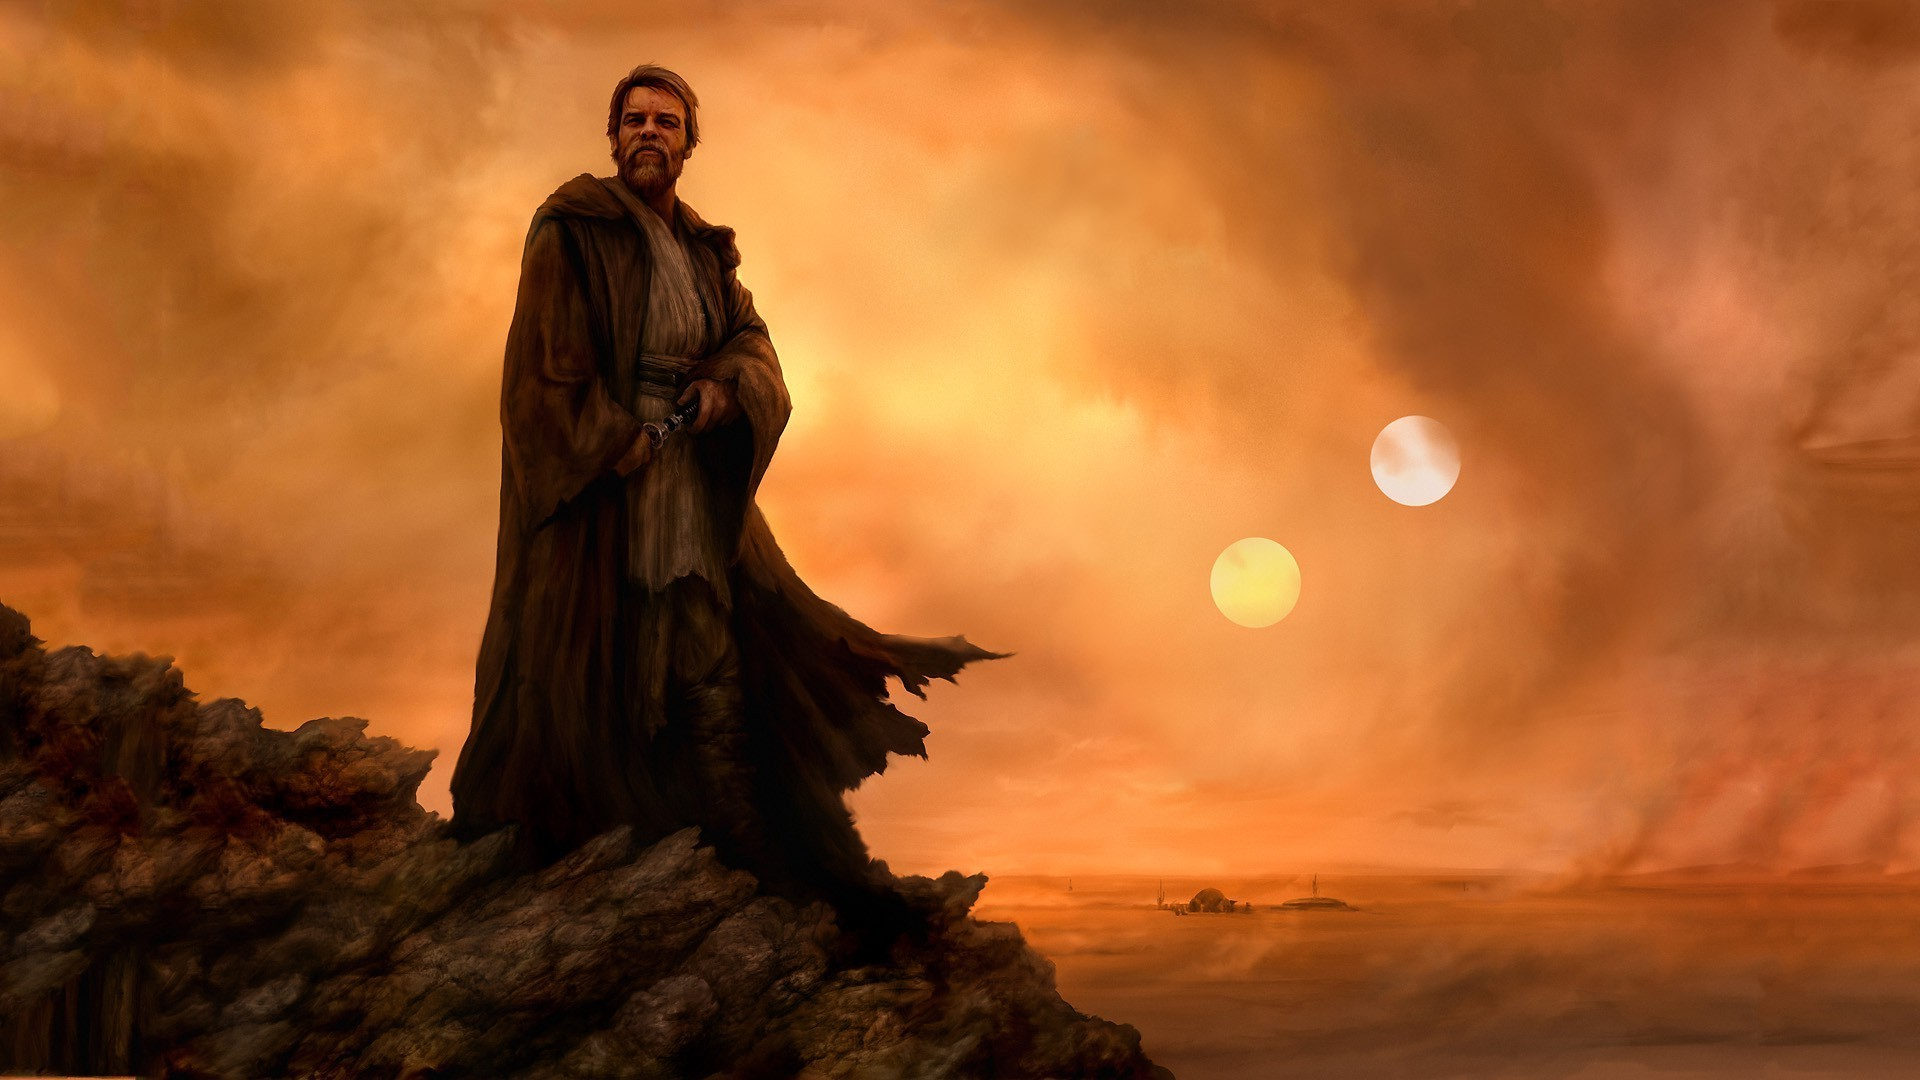 Star Wars Jedi Wallpapers (68+ Images